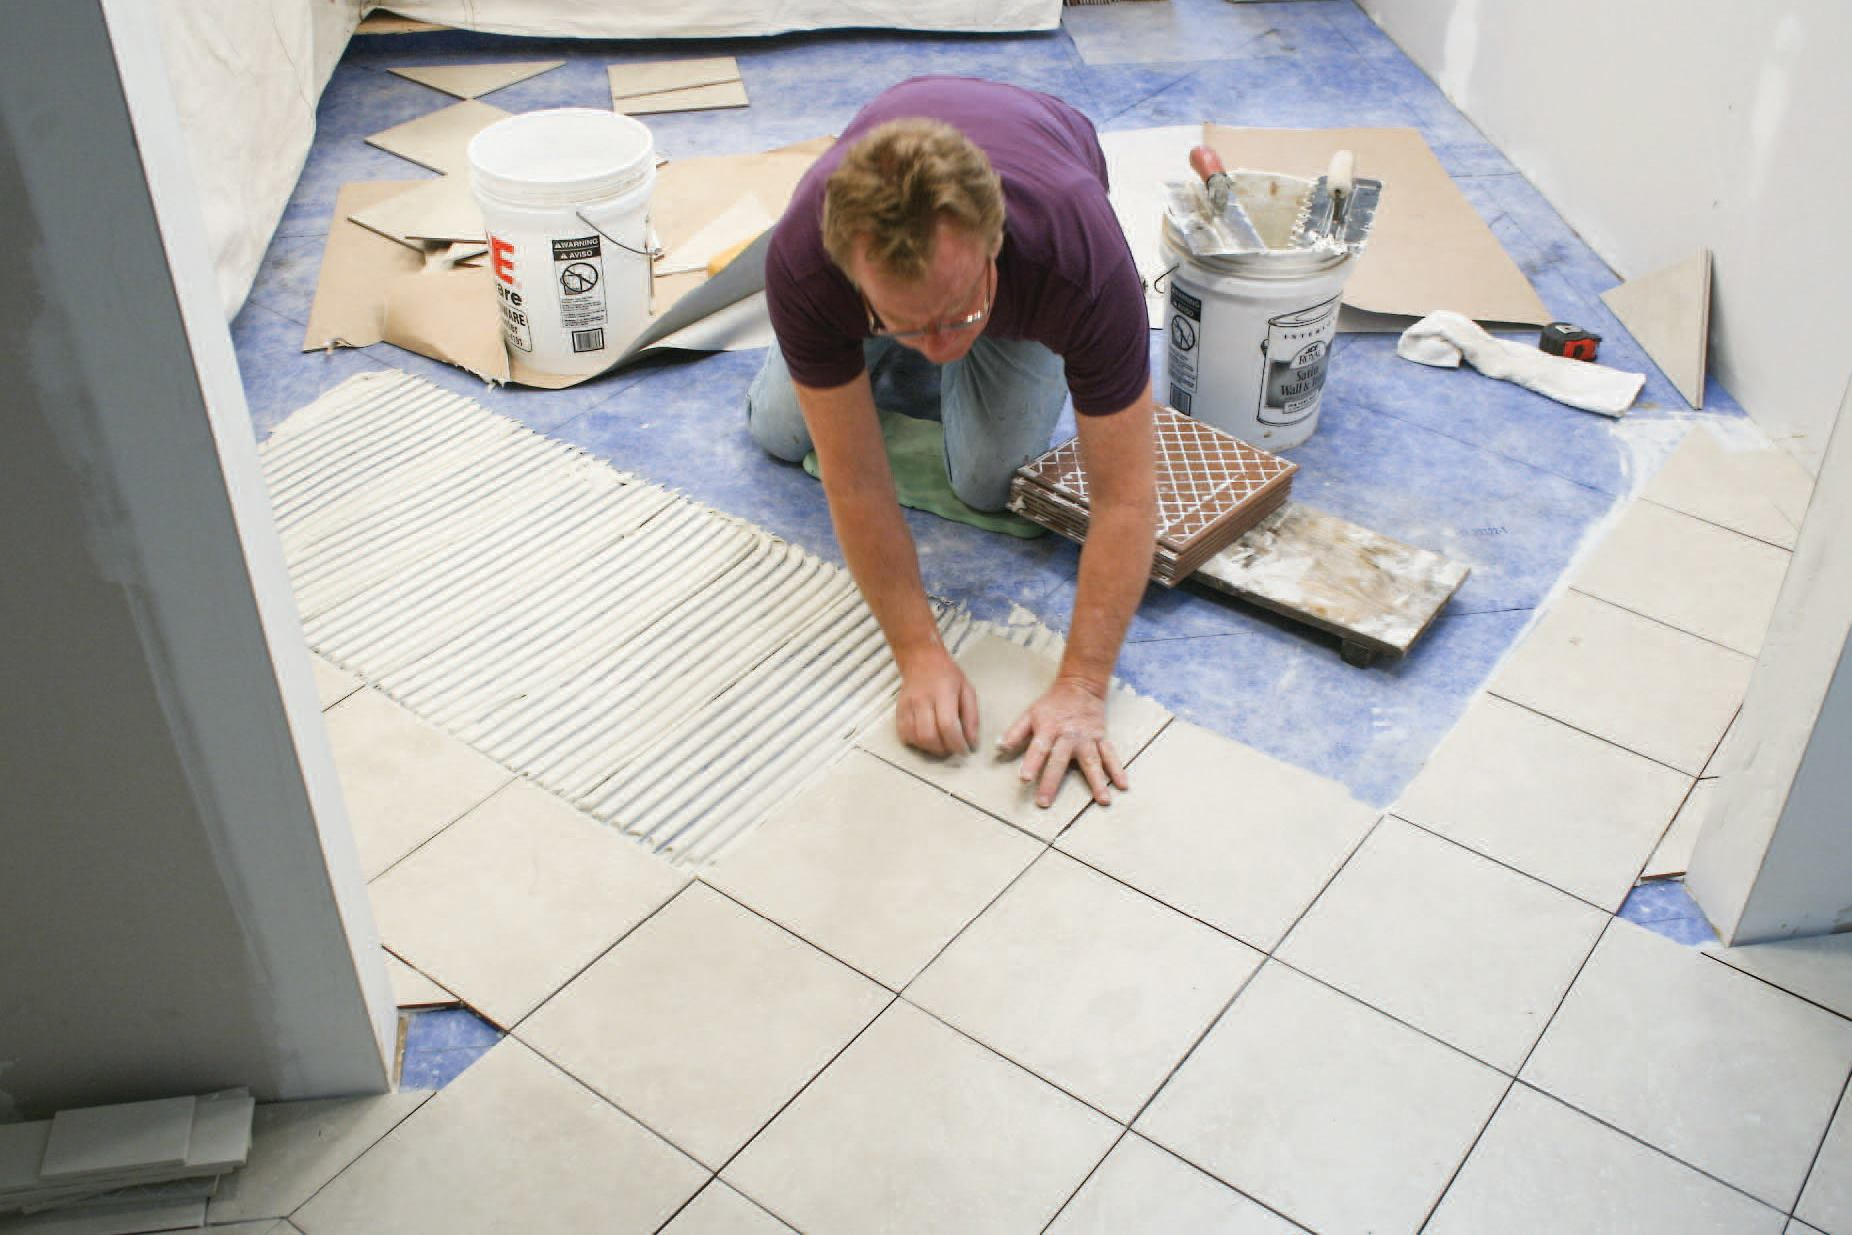 Ceramic tile jlc online tiling over plywood subfloors dailygadgetfo Choice Image